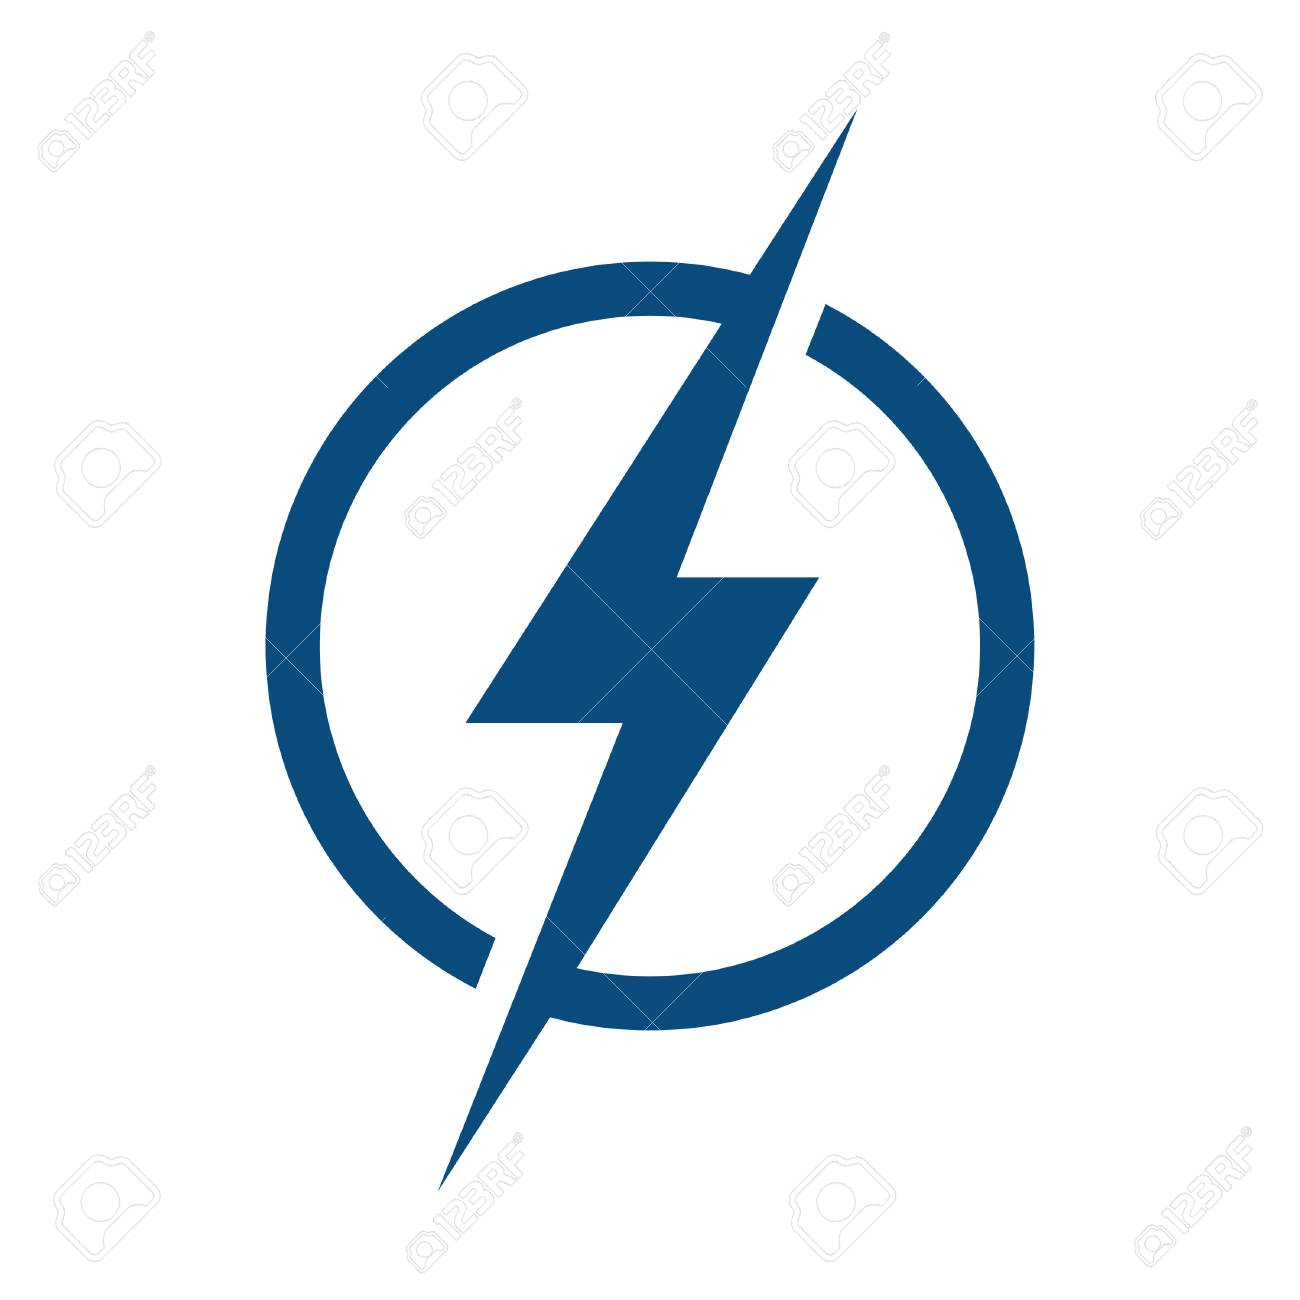 Circle Lightning Bolt Logo Design. Royalty Free Cliparts, Vectors ... for Lightning Logo In Circle  288gtk